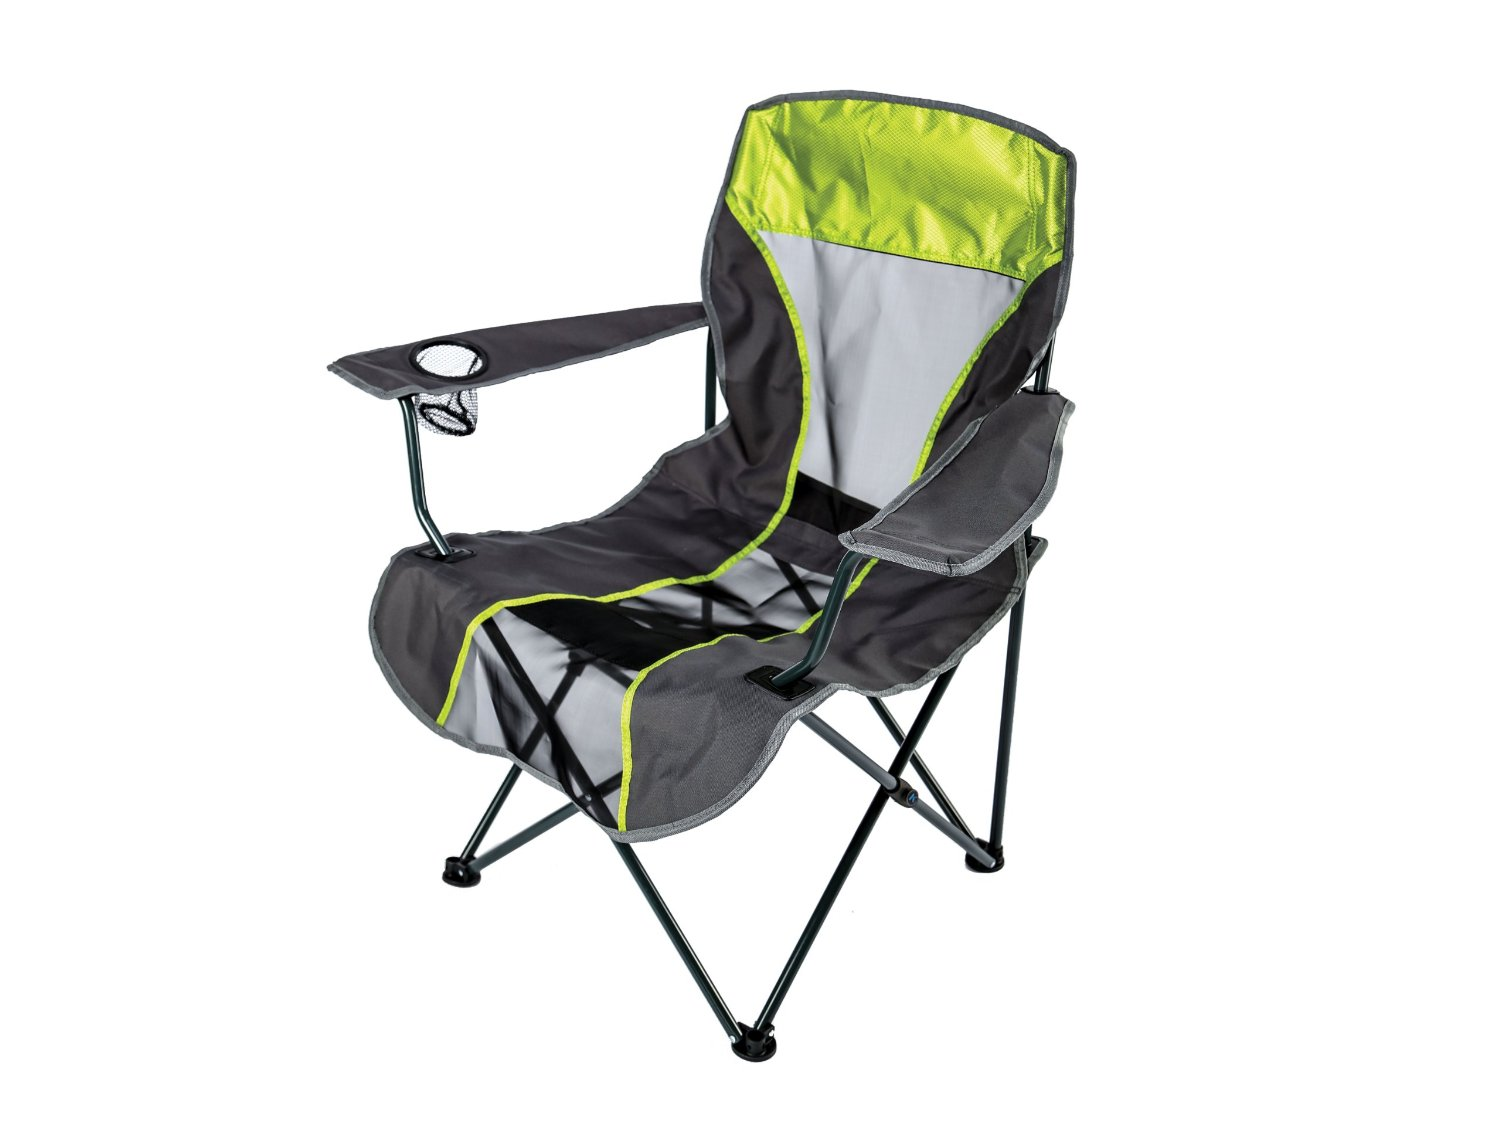 backpack beach chair target bath chairs for elderly in india kelsyus quad mesh